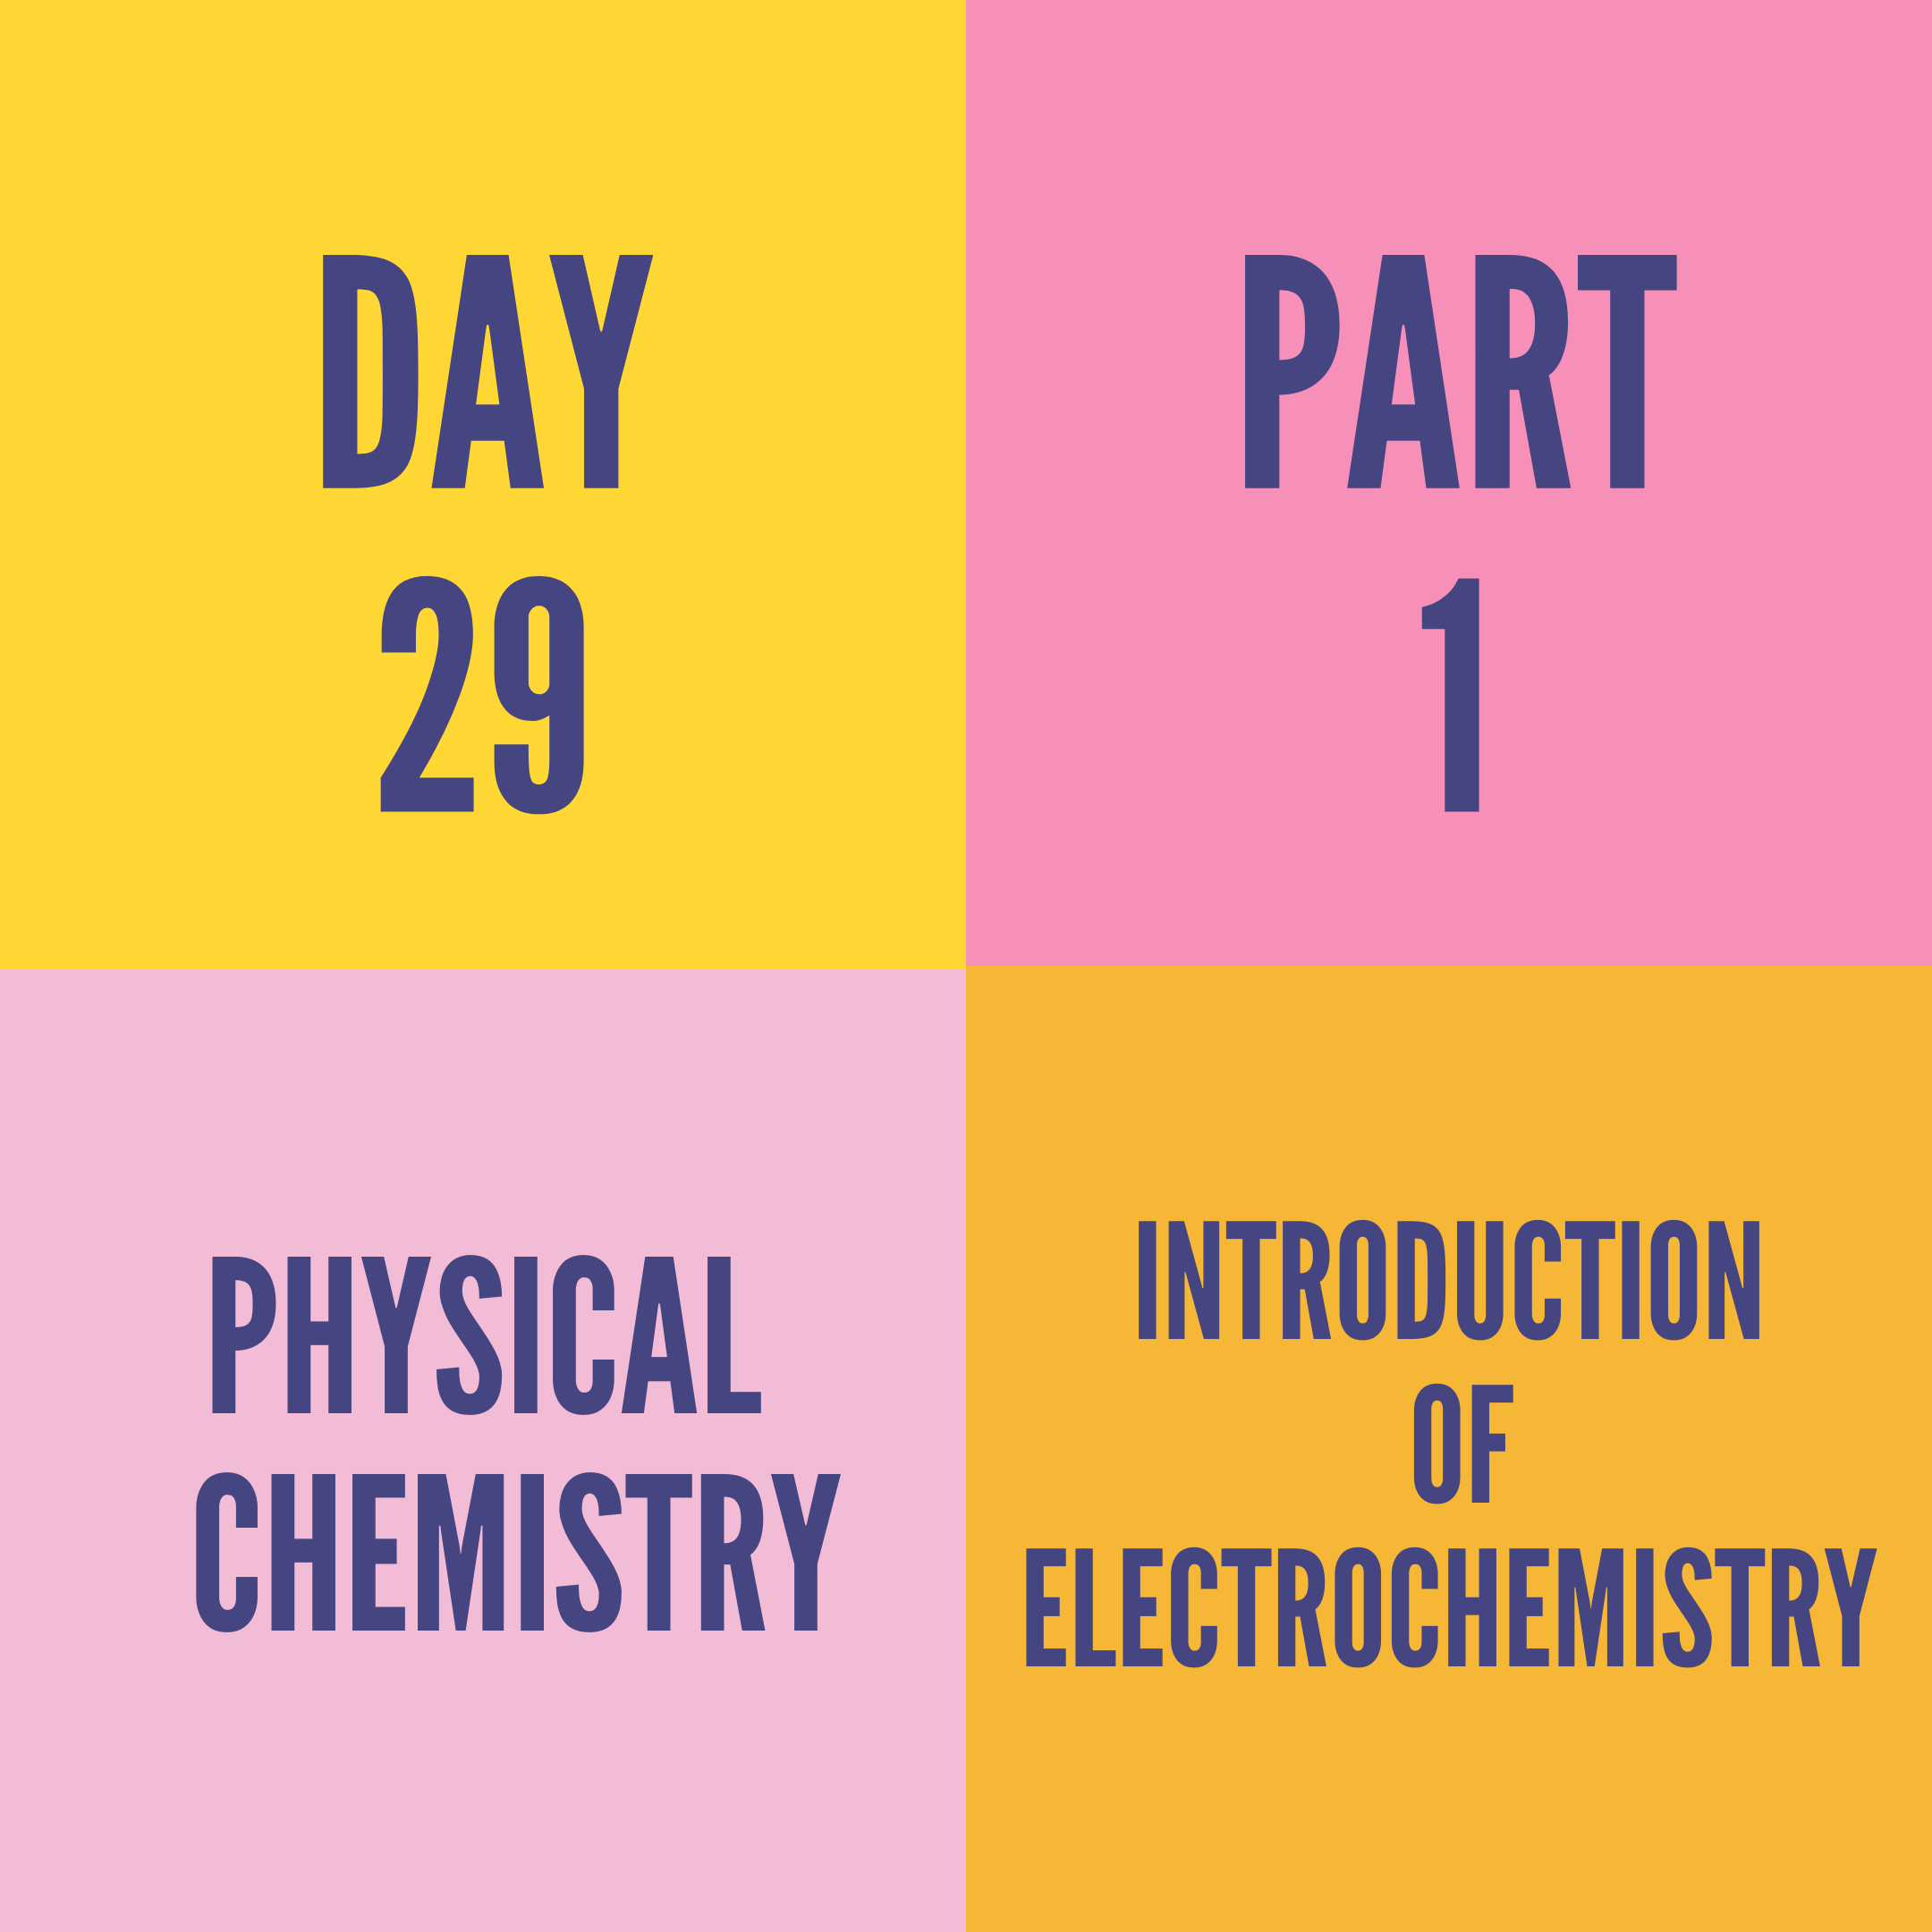 DAY-29 PART-1 INTRODUCTION OF ELECTROCHEMISTRY